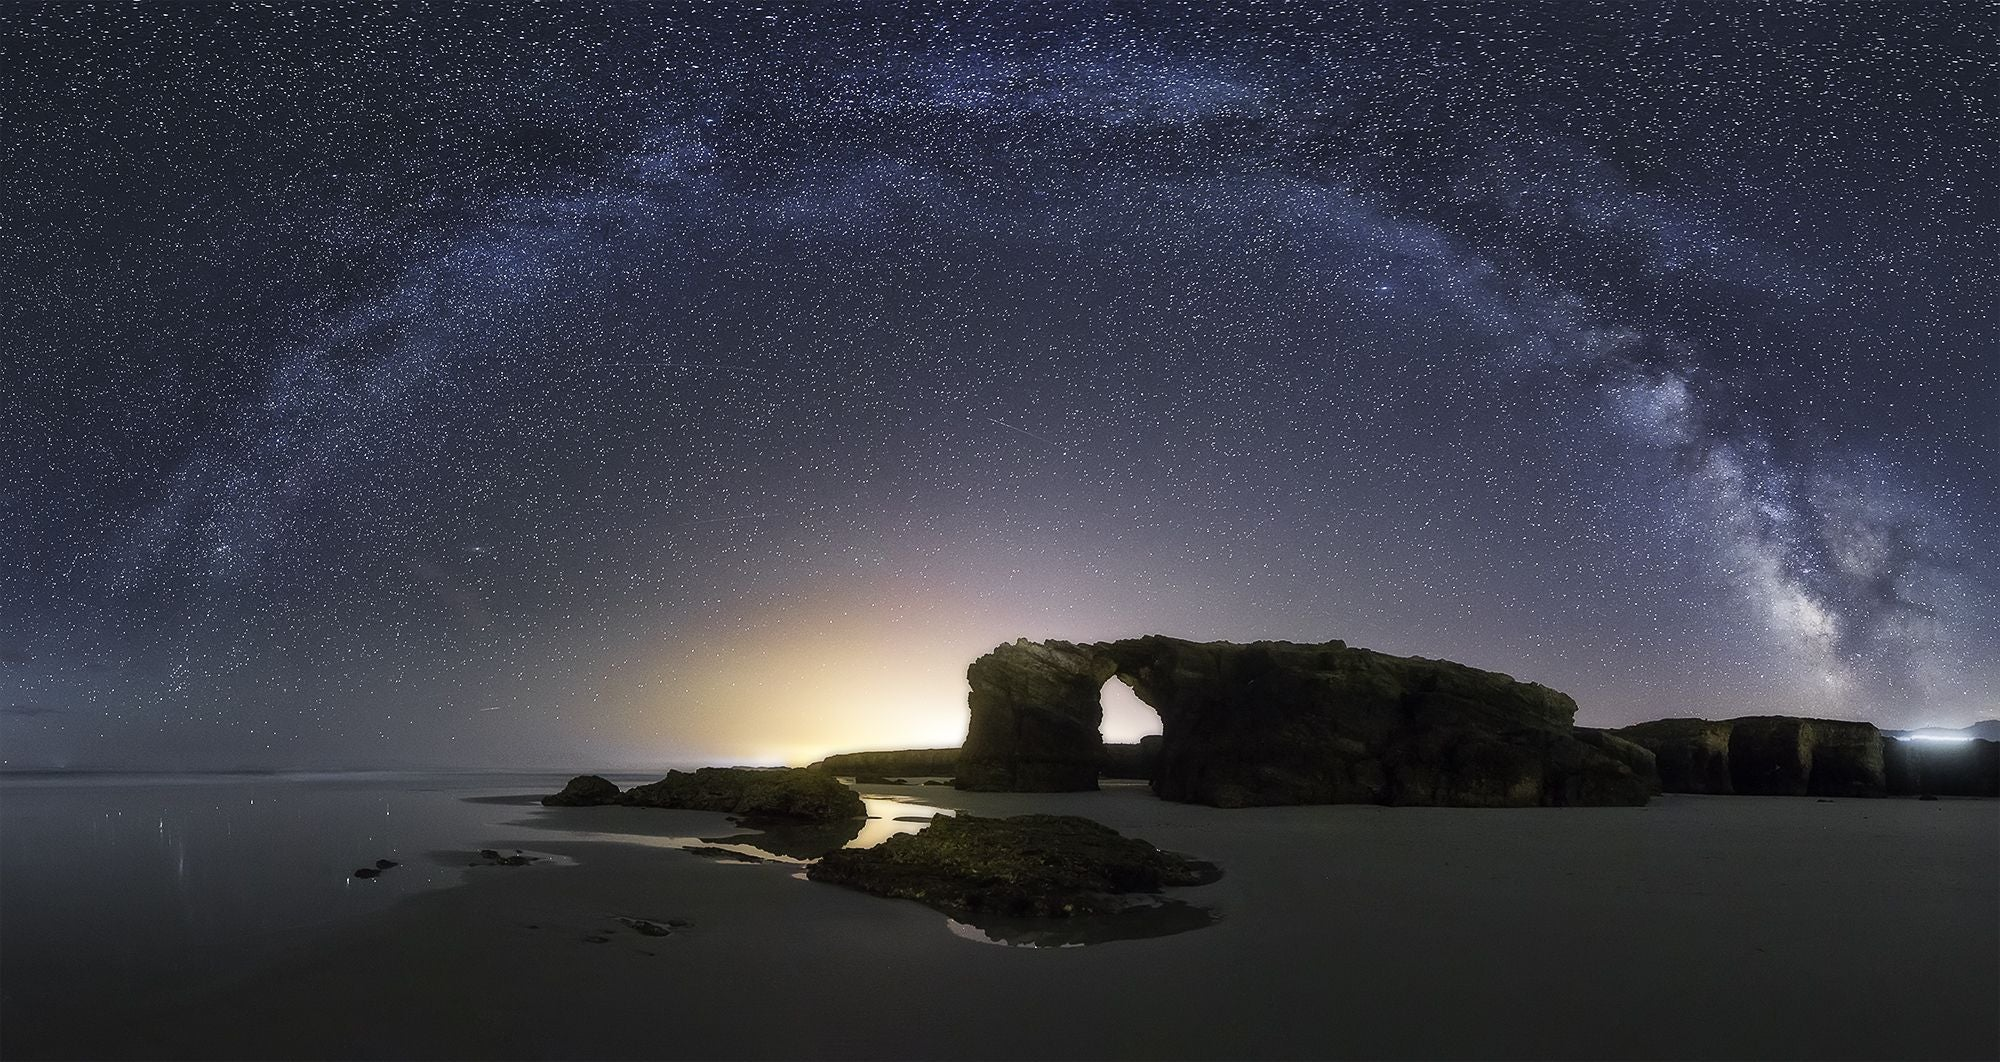 Galaxia en Playa de Las Catedrales - As Catedrais